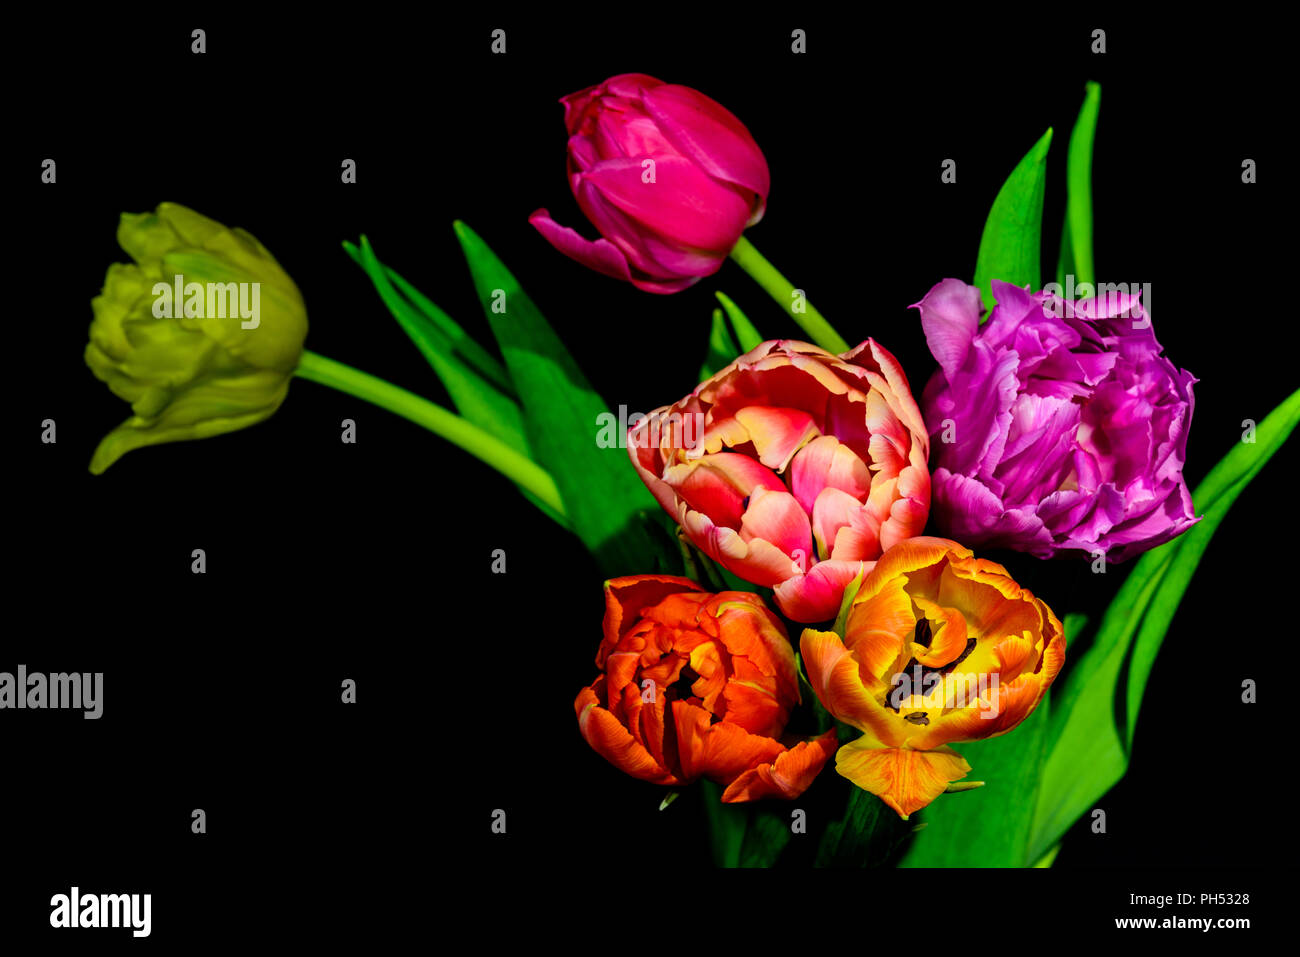 Fine art  floral still life colorful flower macro of a blooming tulip bouquet of six on black background with red,pink,orange,violet,yellow blossoms Stock Photo